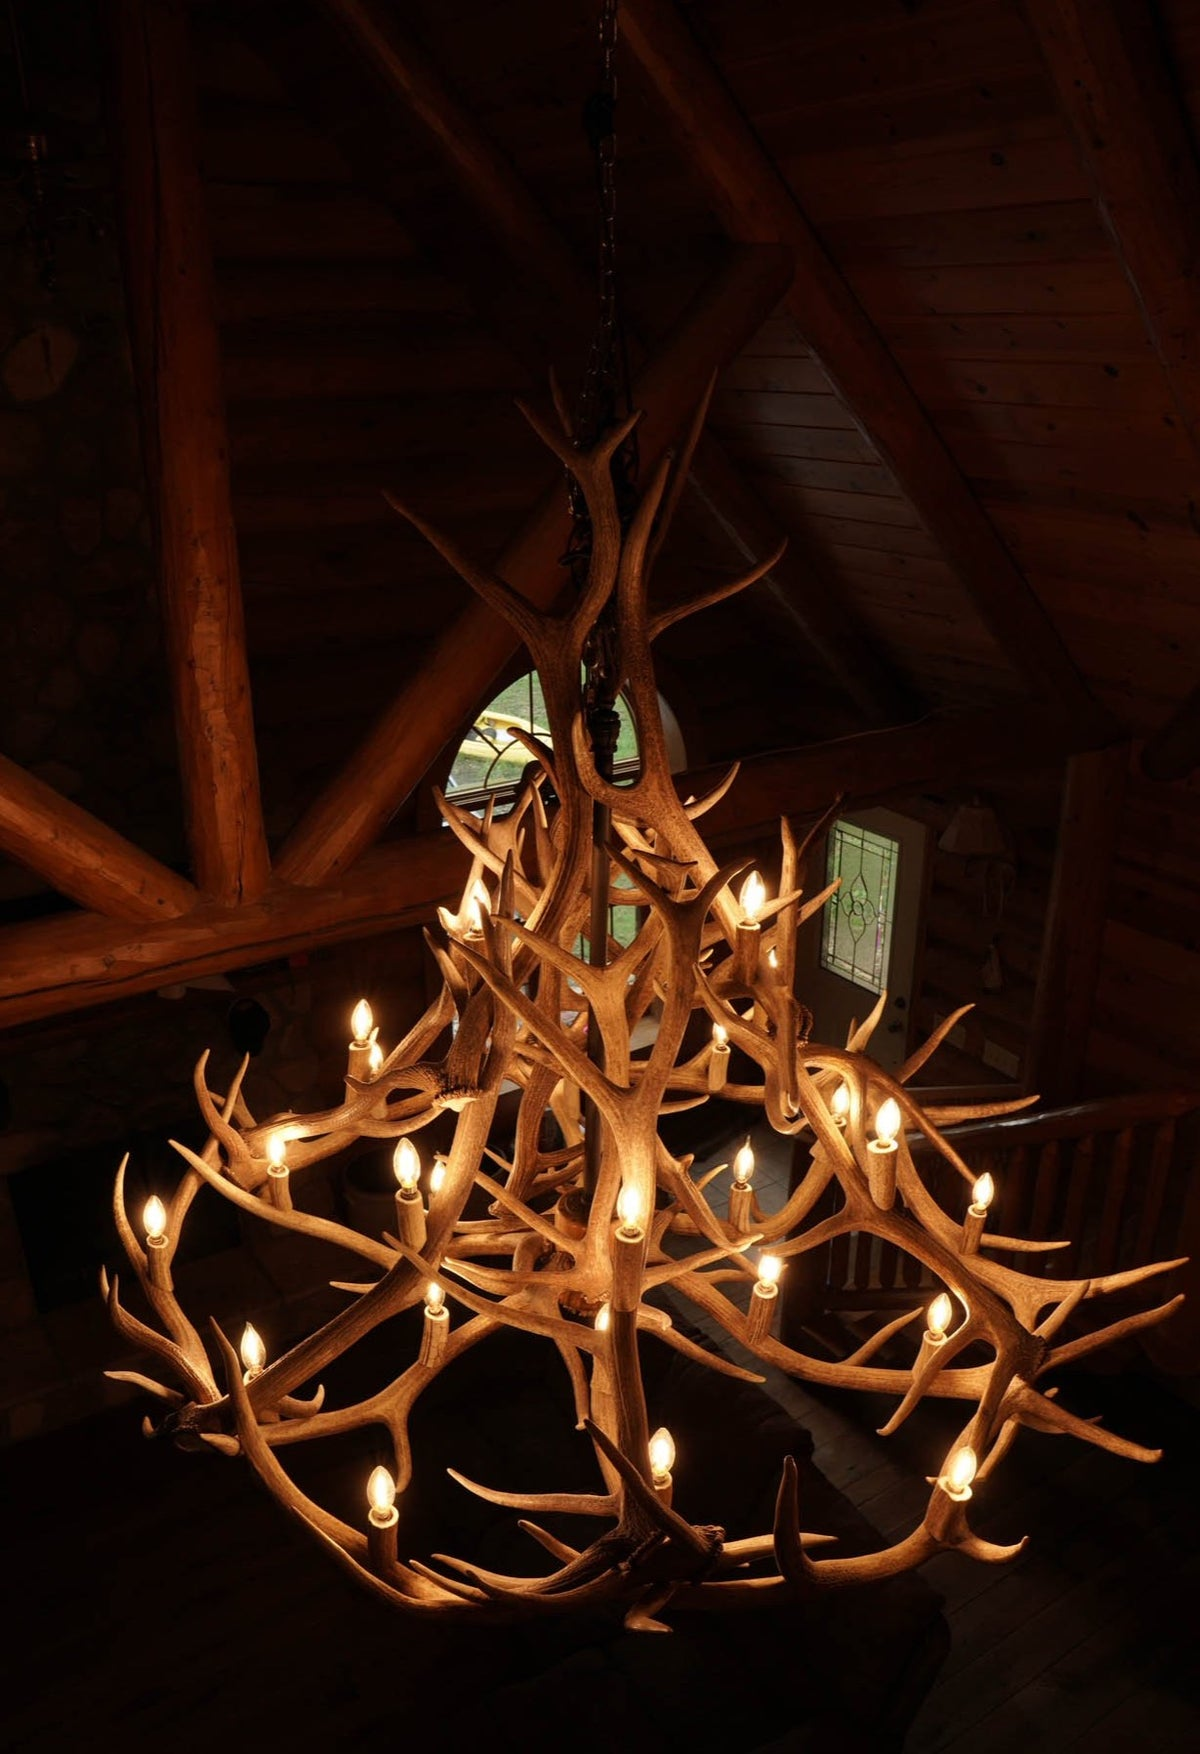 24 Antler, 27 Light Elk Antler Chandelier